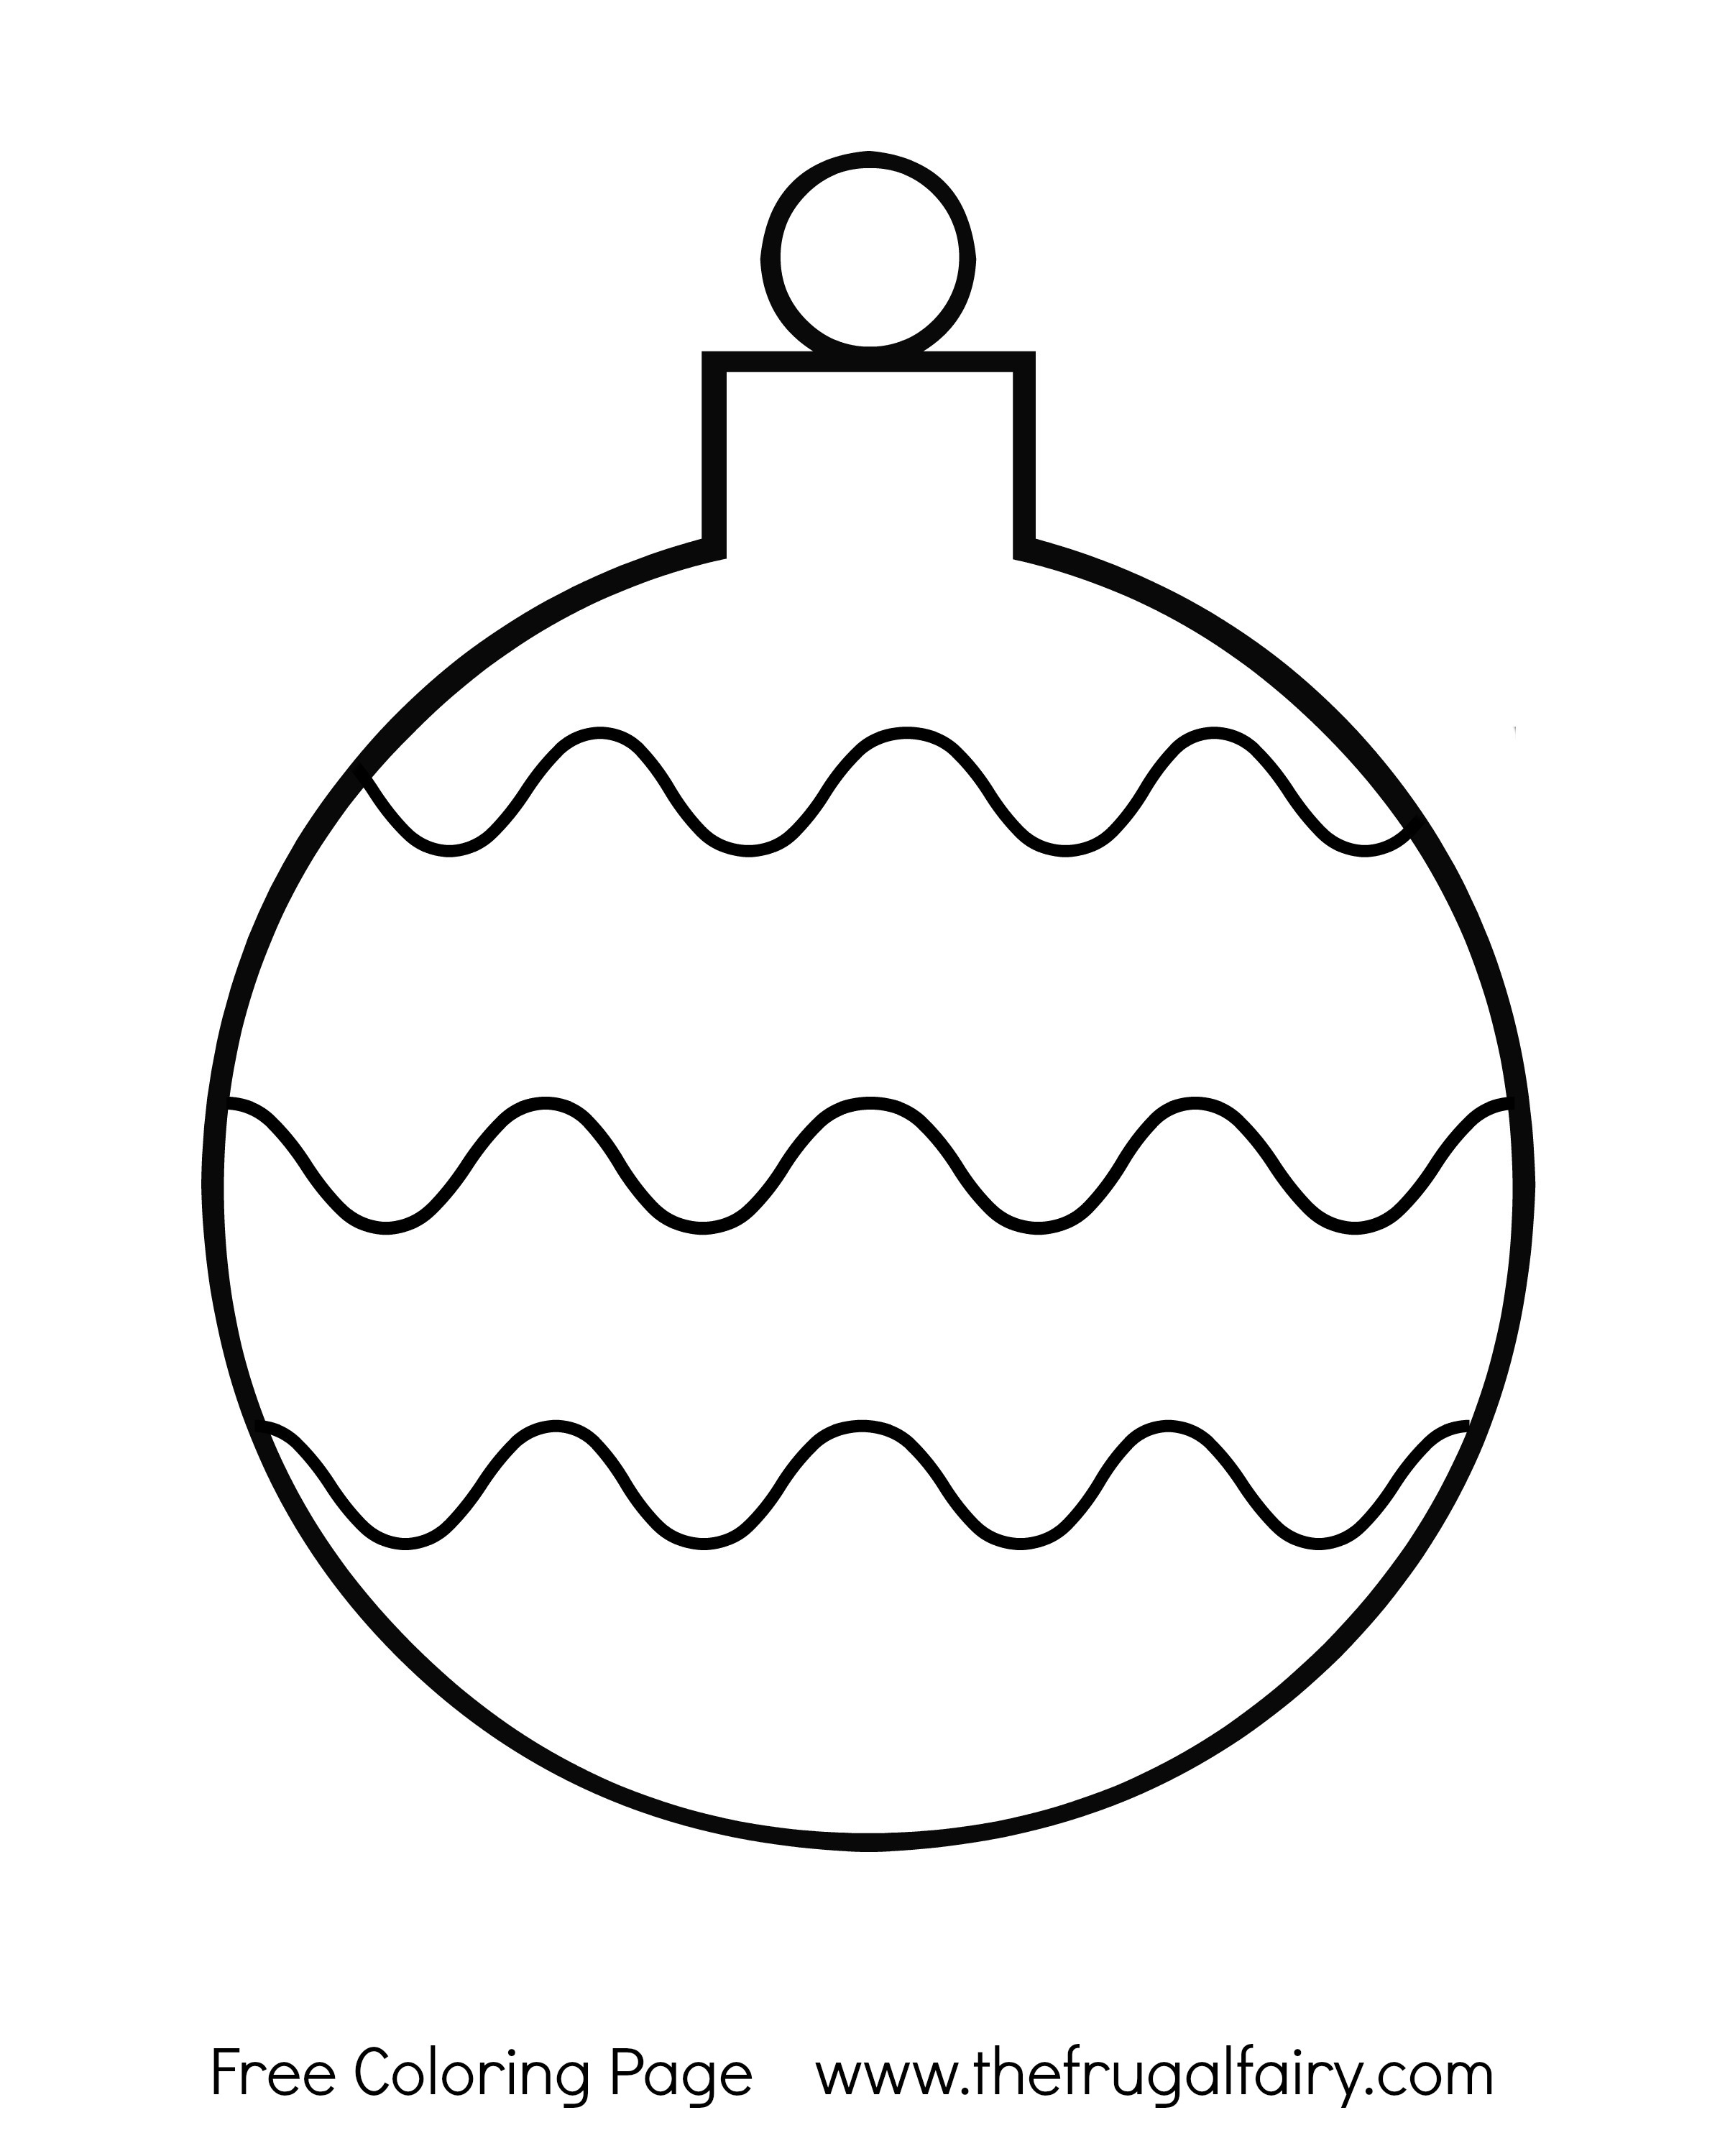 2400x3000 Ornament Coloring Page Elegant Ornament Coloring Page Logo